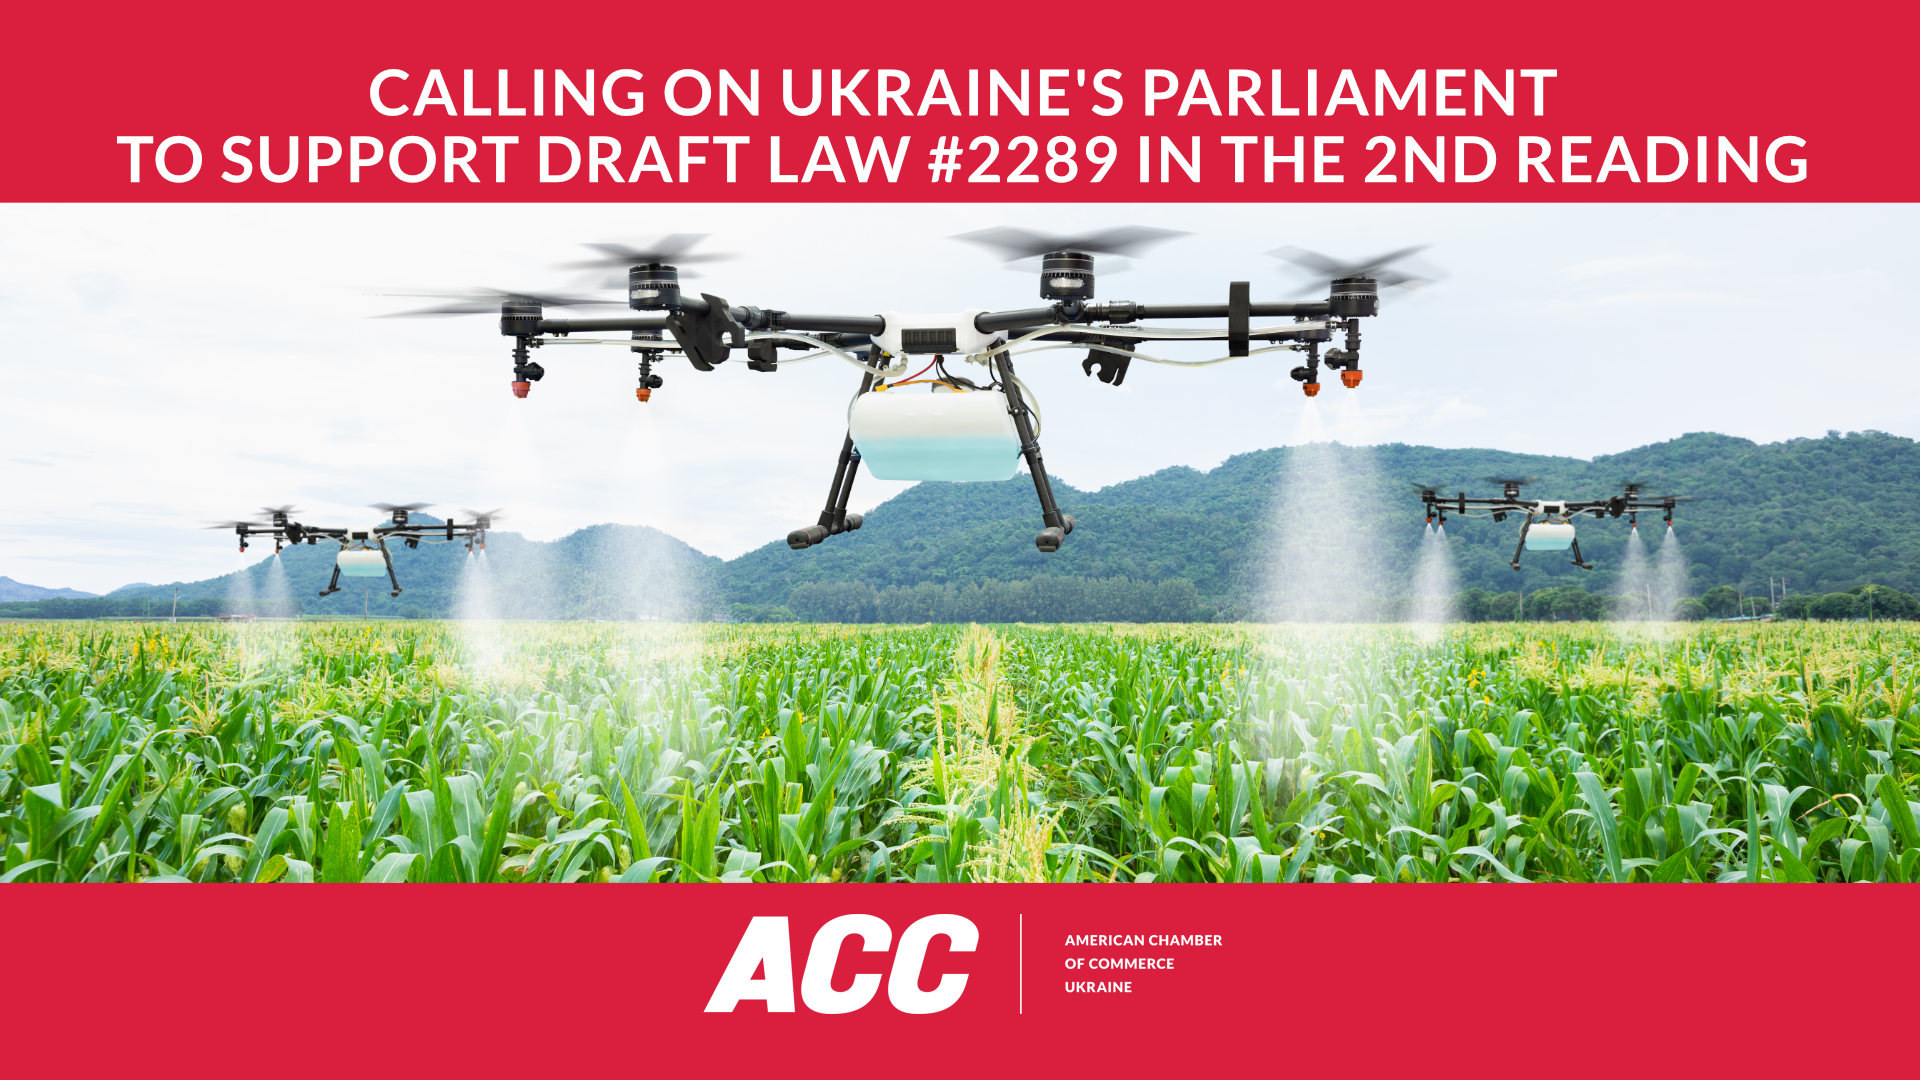 AmCham Ukraine Calls on Parliament to Support Draft Law #2289 in the Second Reading